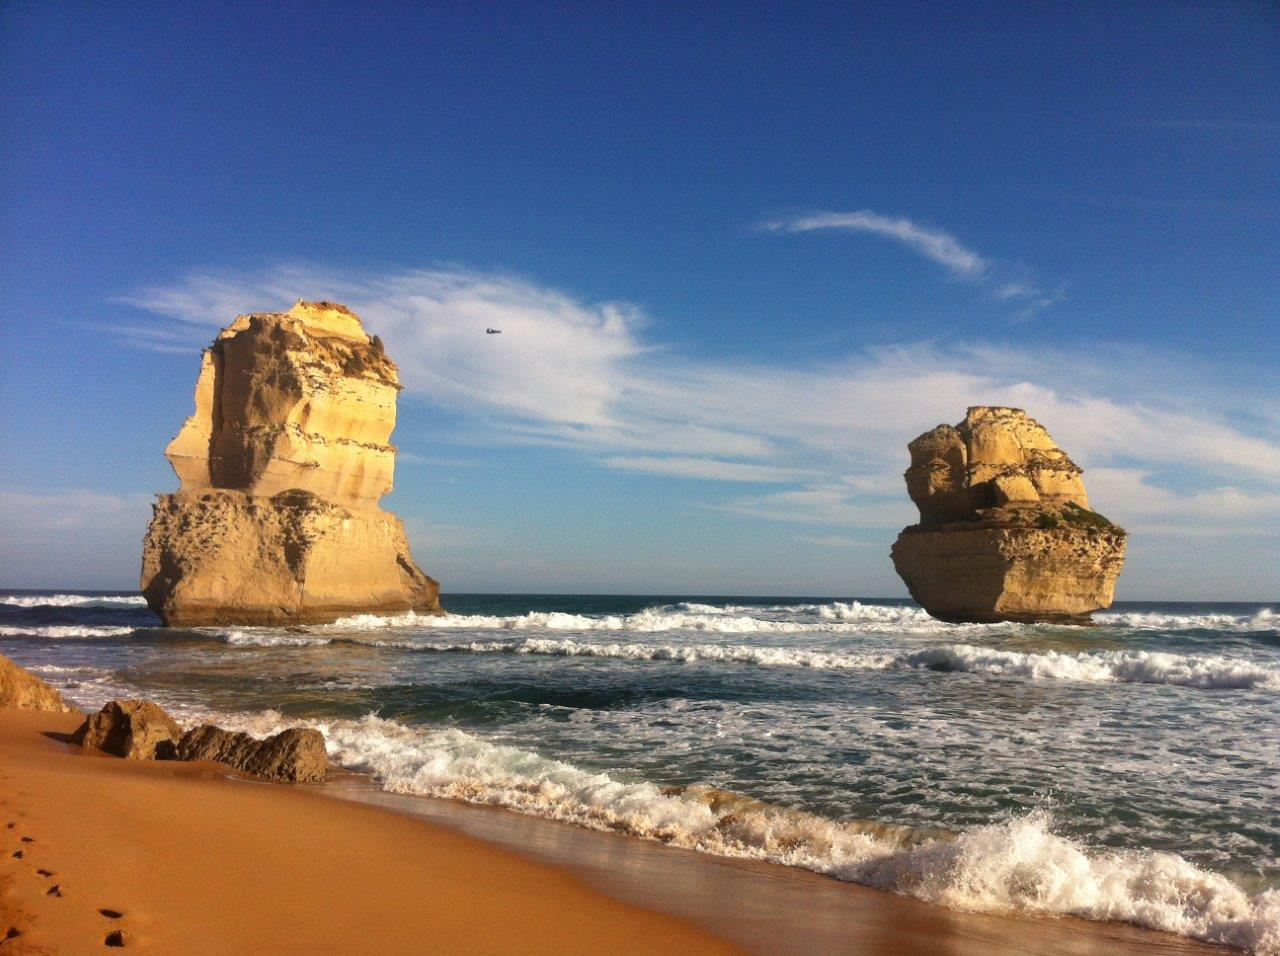 The Apostles, Great Ocean Road, Australia